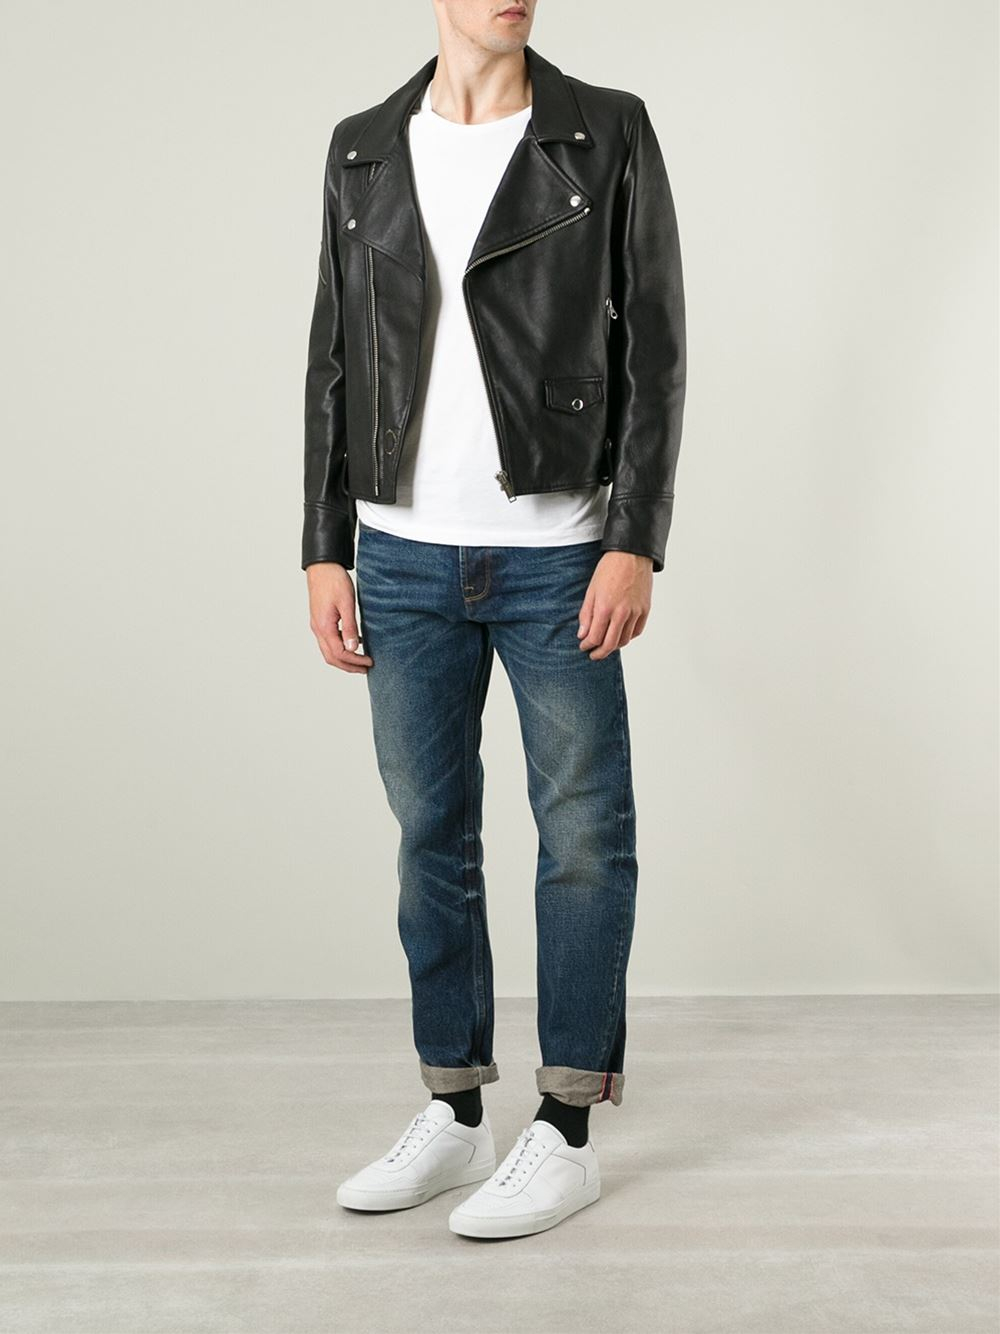 Lyst Golden Goose Deluxe Brand Classic Biker Jacket In Black For Men